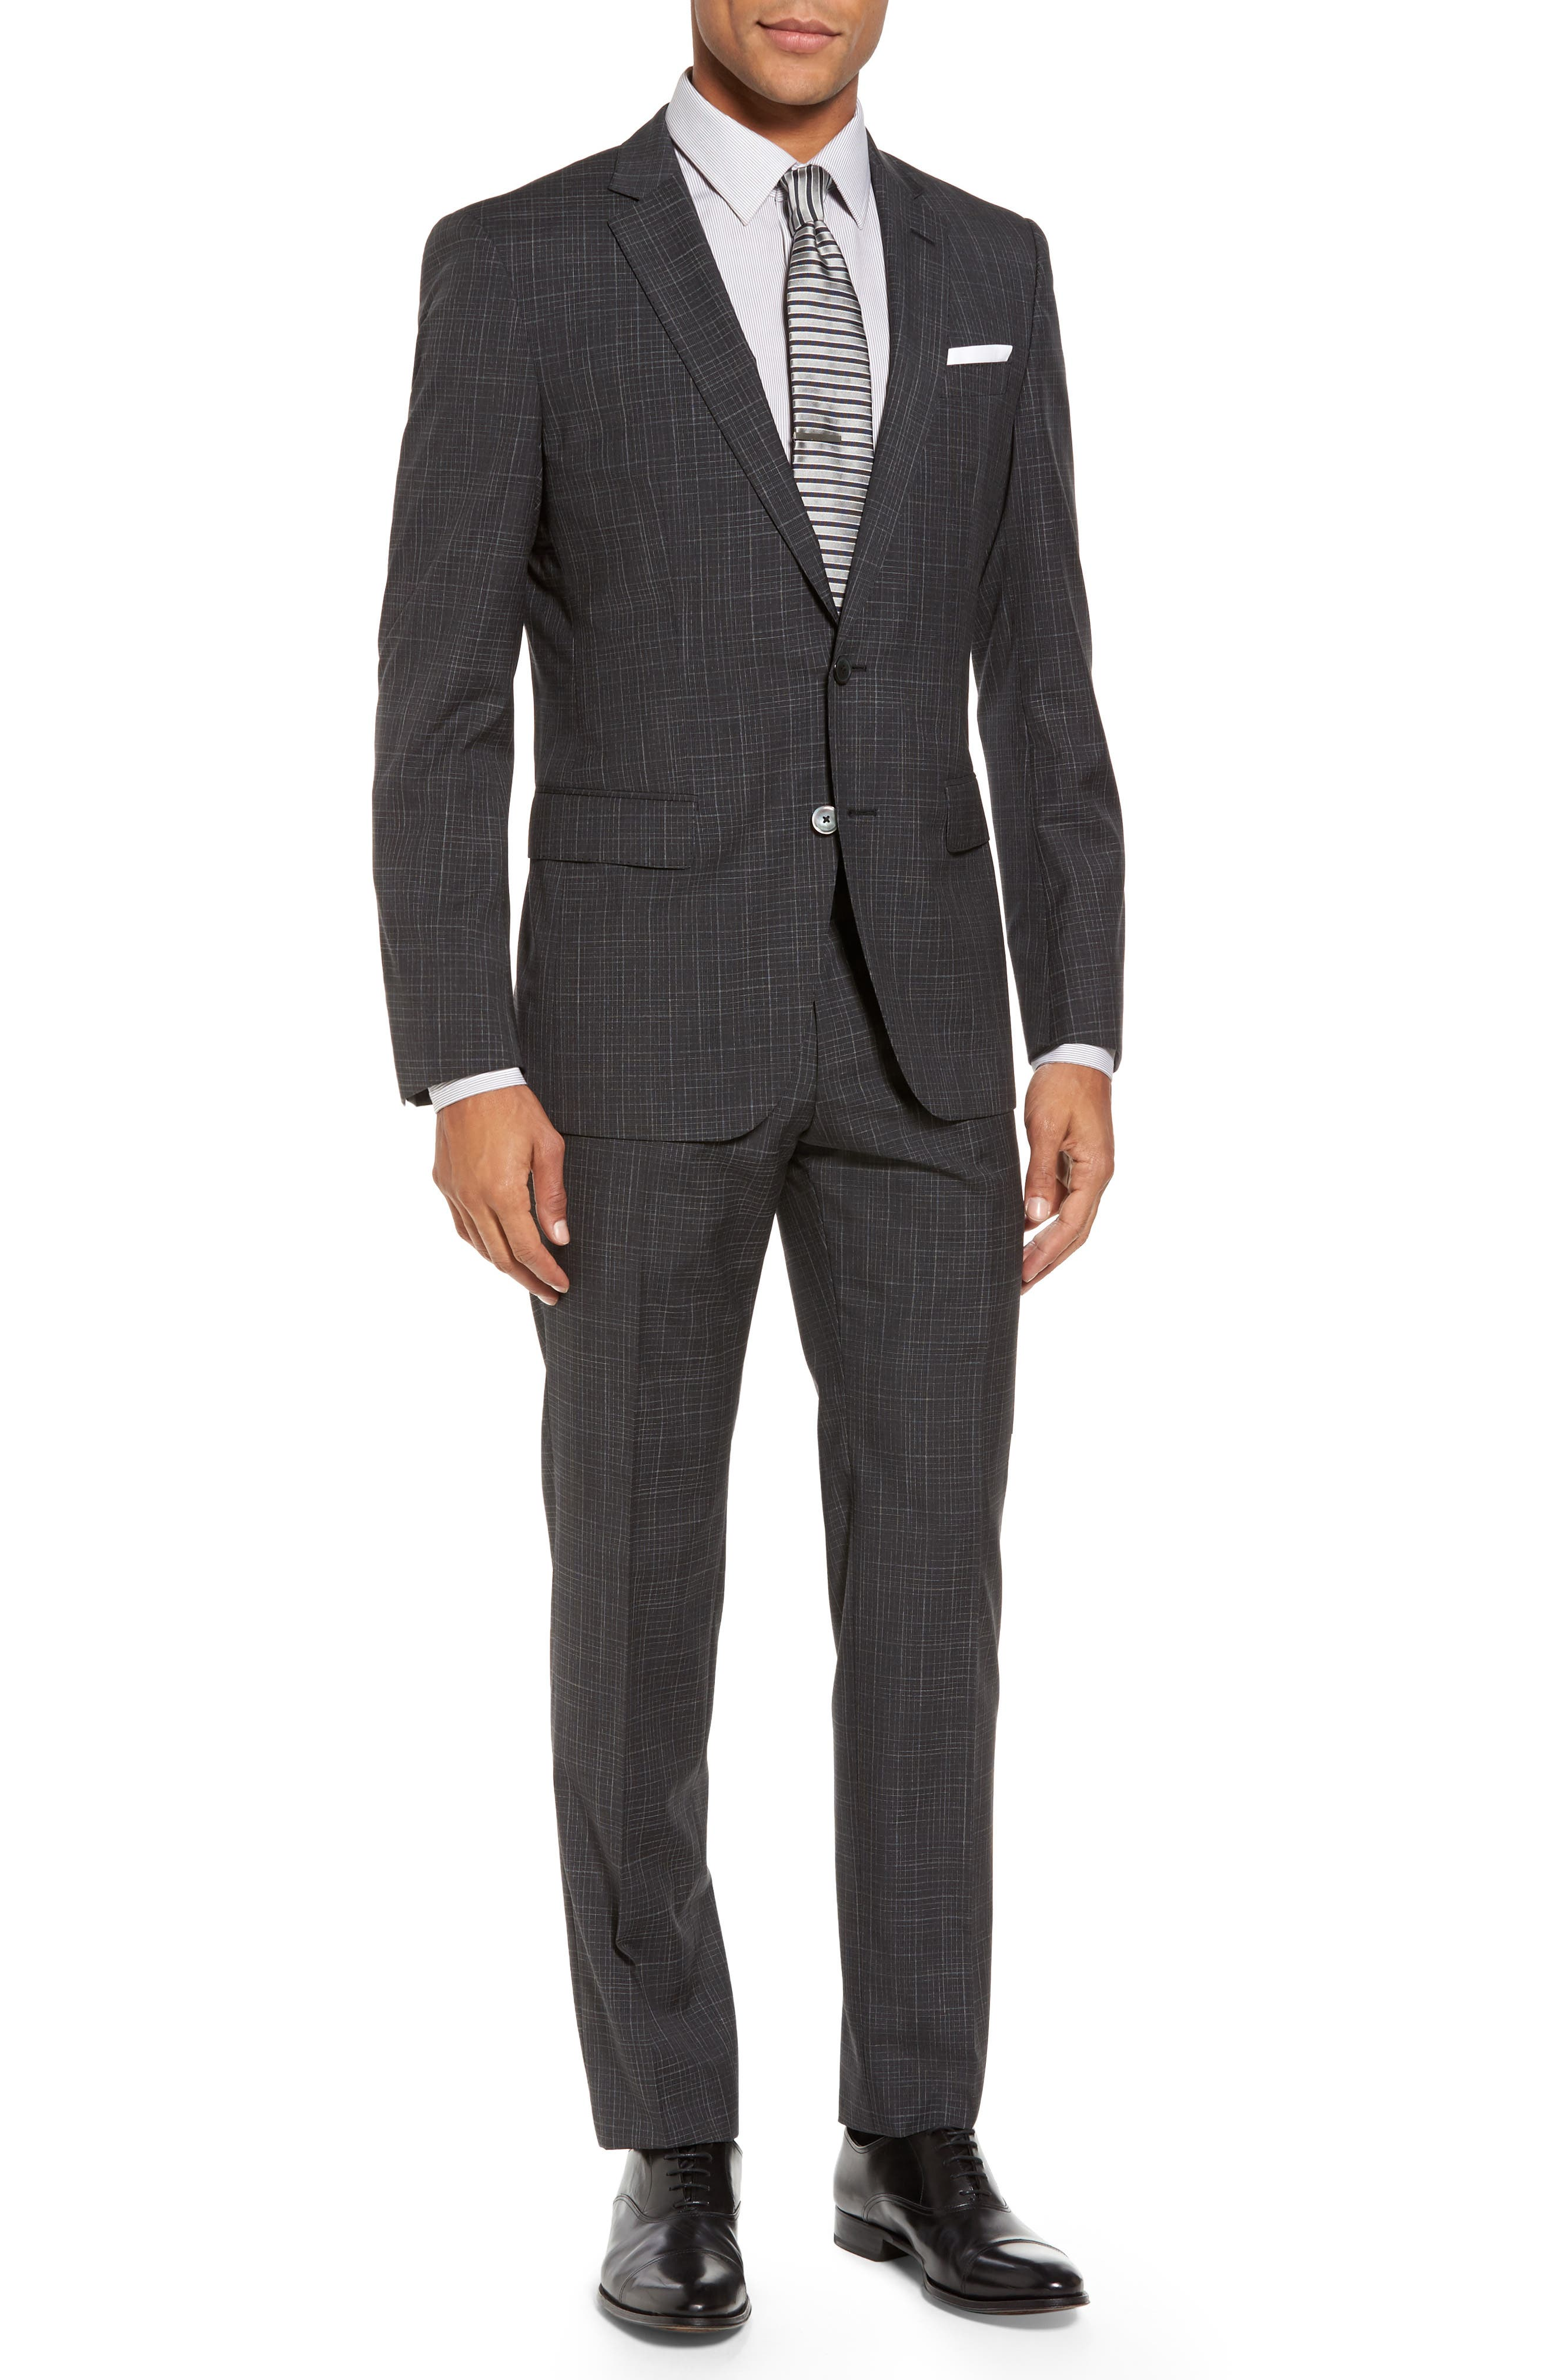 Hutson/Gander Trim Fit Plaid Wool Suit,                         Main,                         color, Open Grey